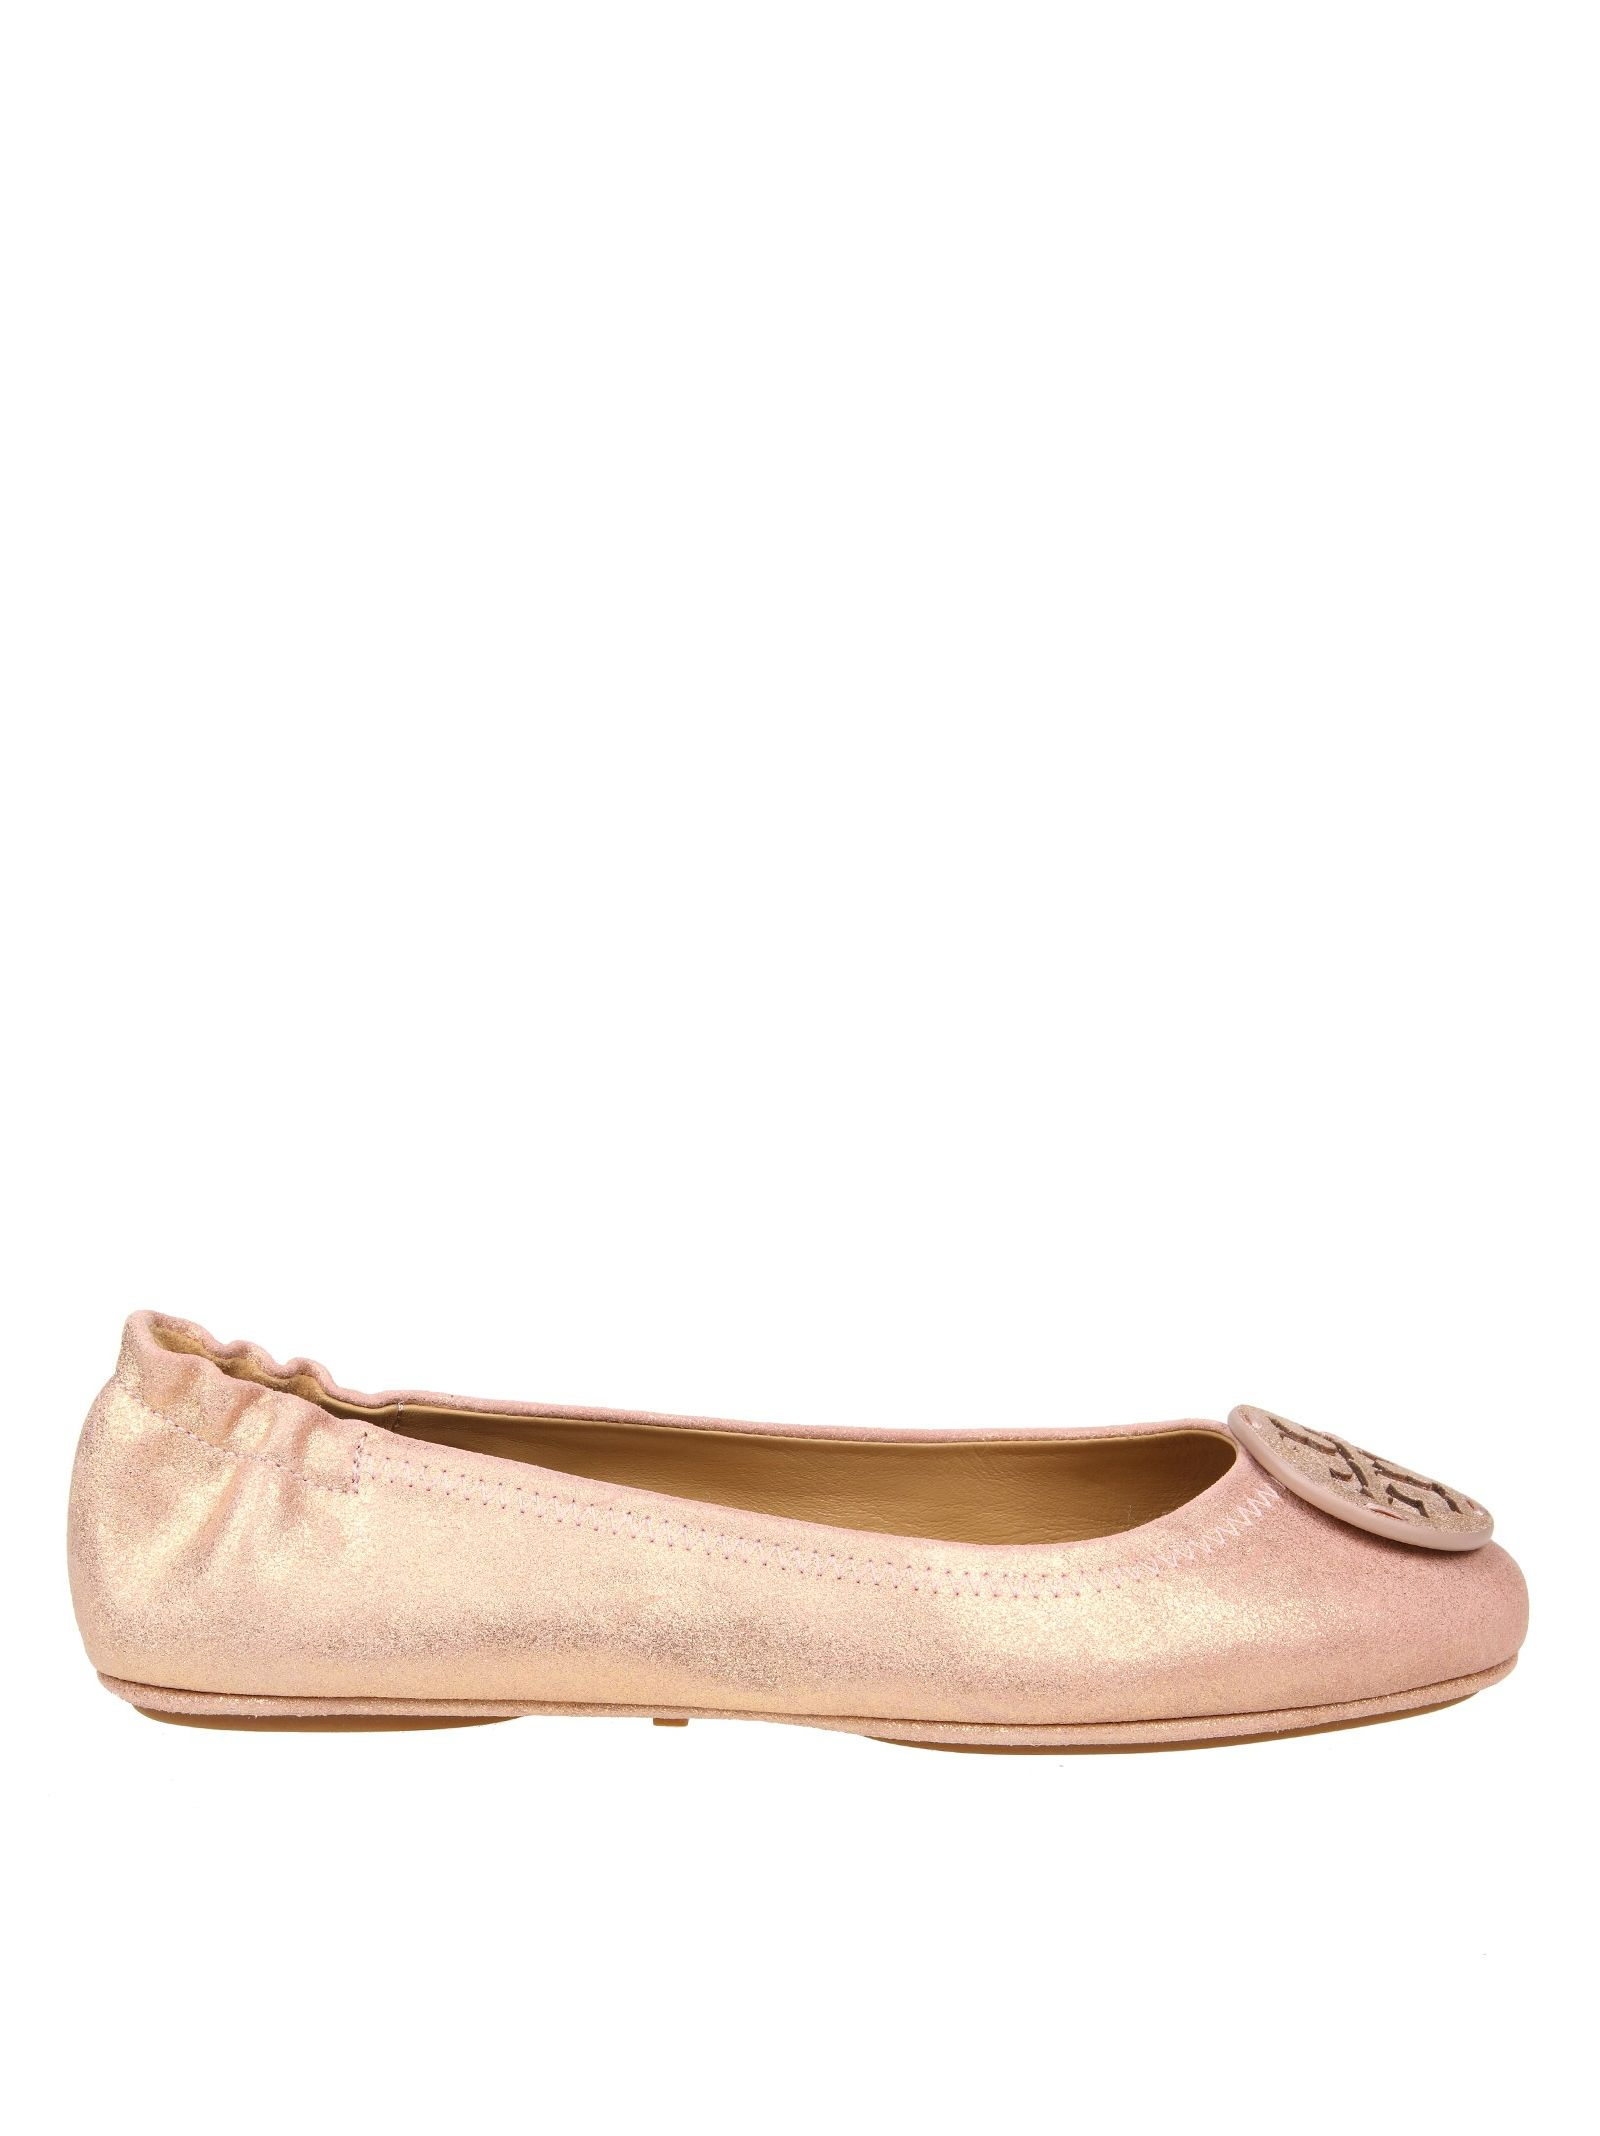 Tory Burch Ballerina Minnie Travel Color Pink